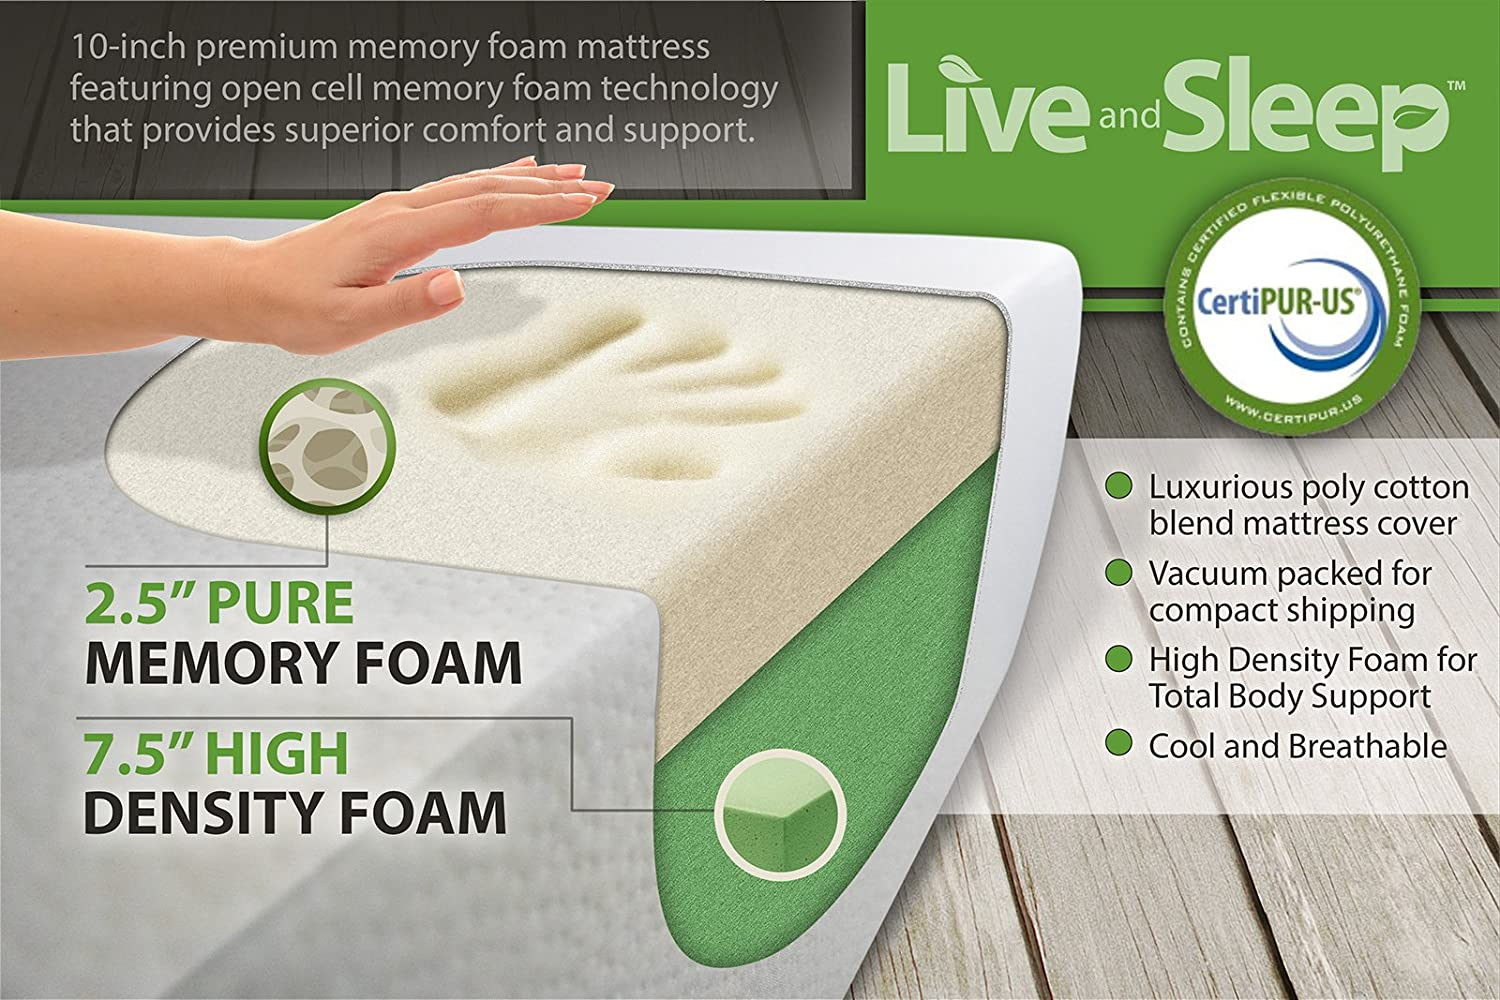 amazoncom live and sleep resort sleep classic queen size 10 inch cooling medium firm memory foam mattress with premium form pillow certipur certified